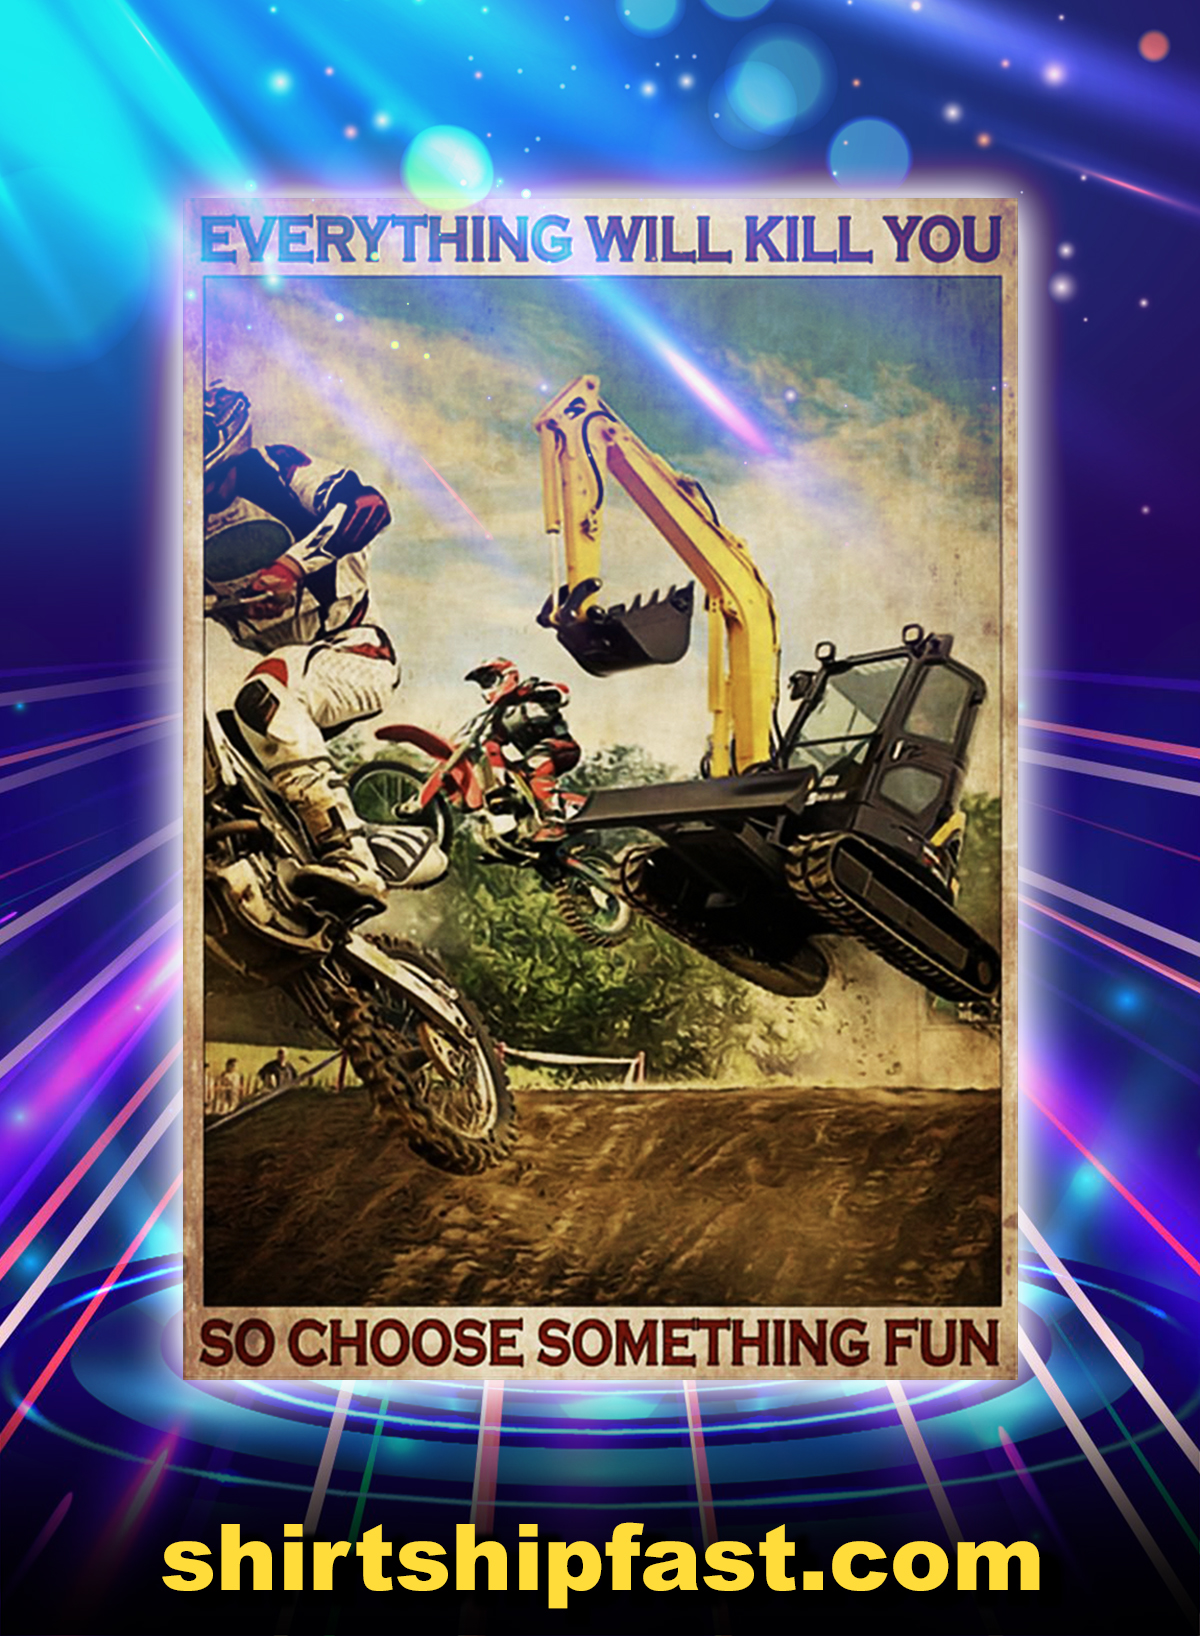 Motorcross and escavator choose something fun poster - A1